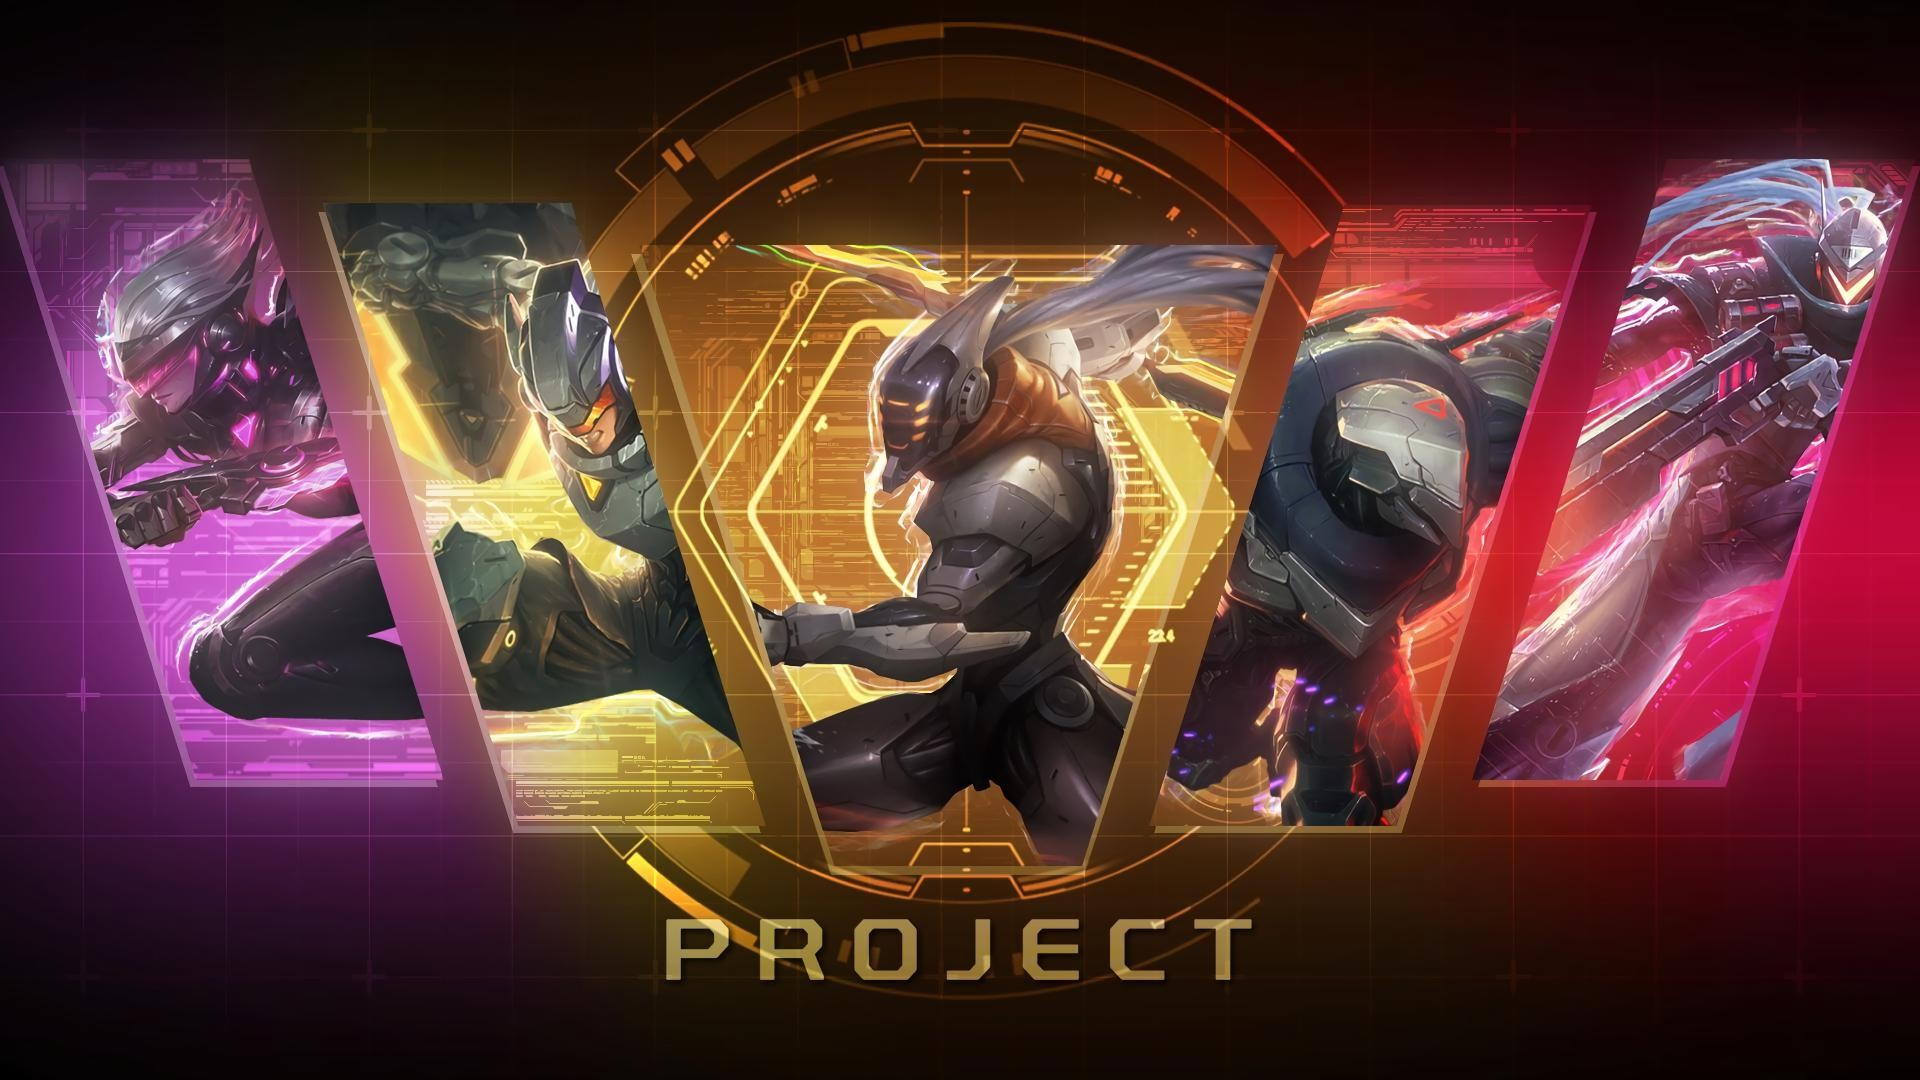 Project Zed Wallpaper 1920x1080 86 Images